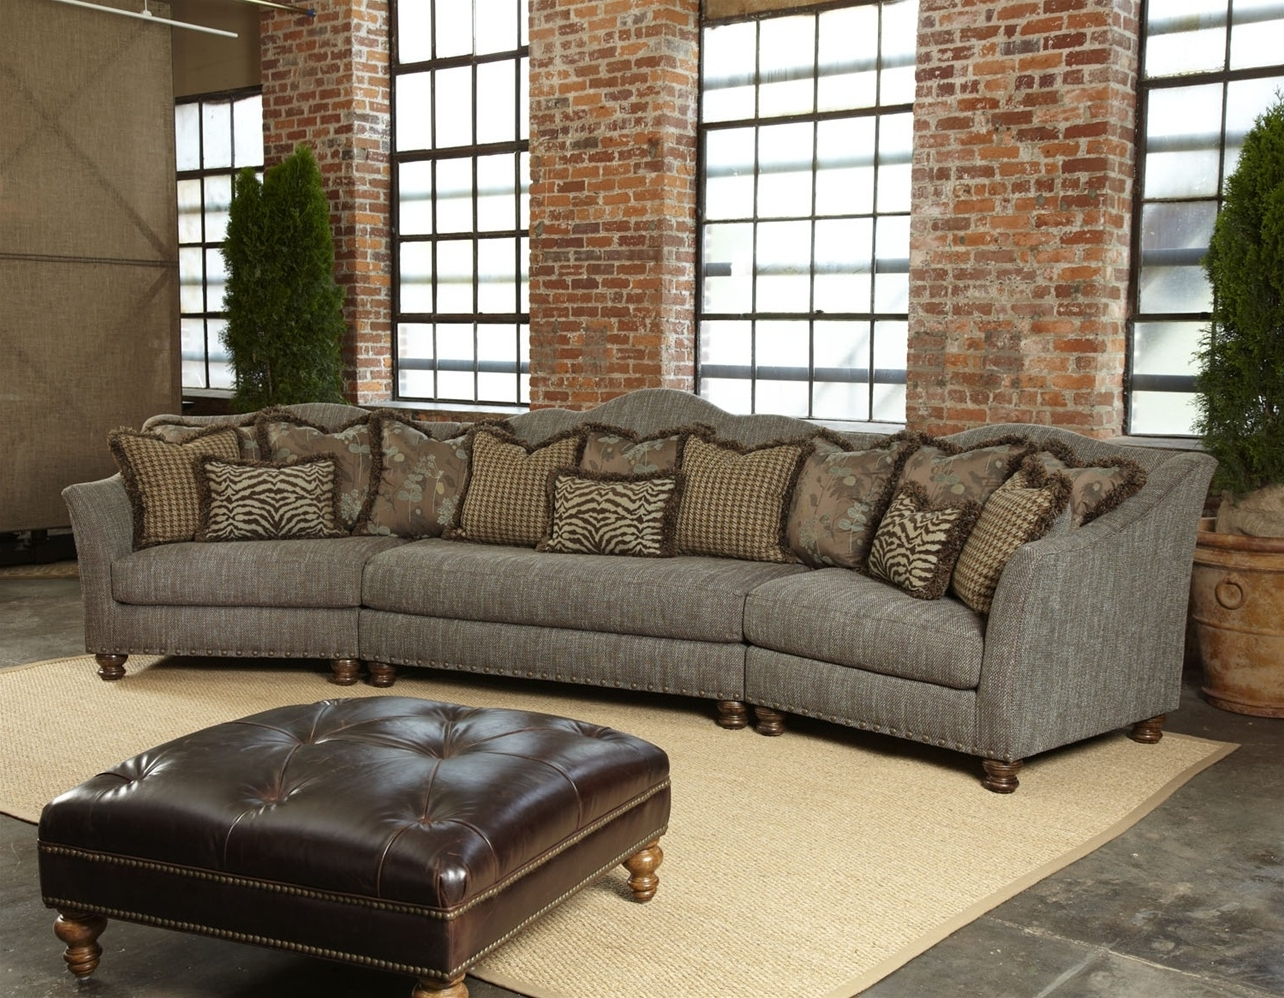 Trendy Good Quality Sectional Sofas – Cleanupflorida Pertaining To North Carolina Sectional Sofas (View 12 of 20)